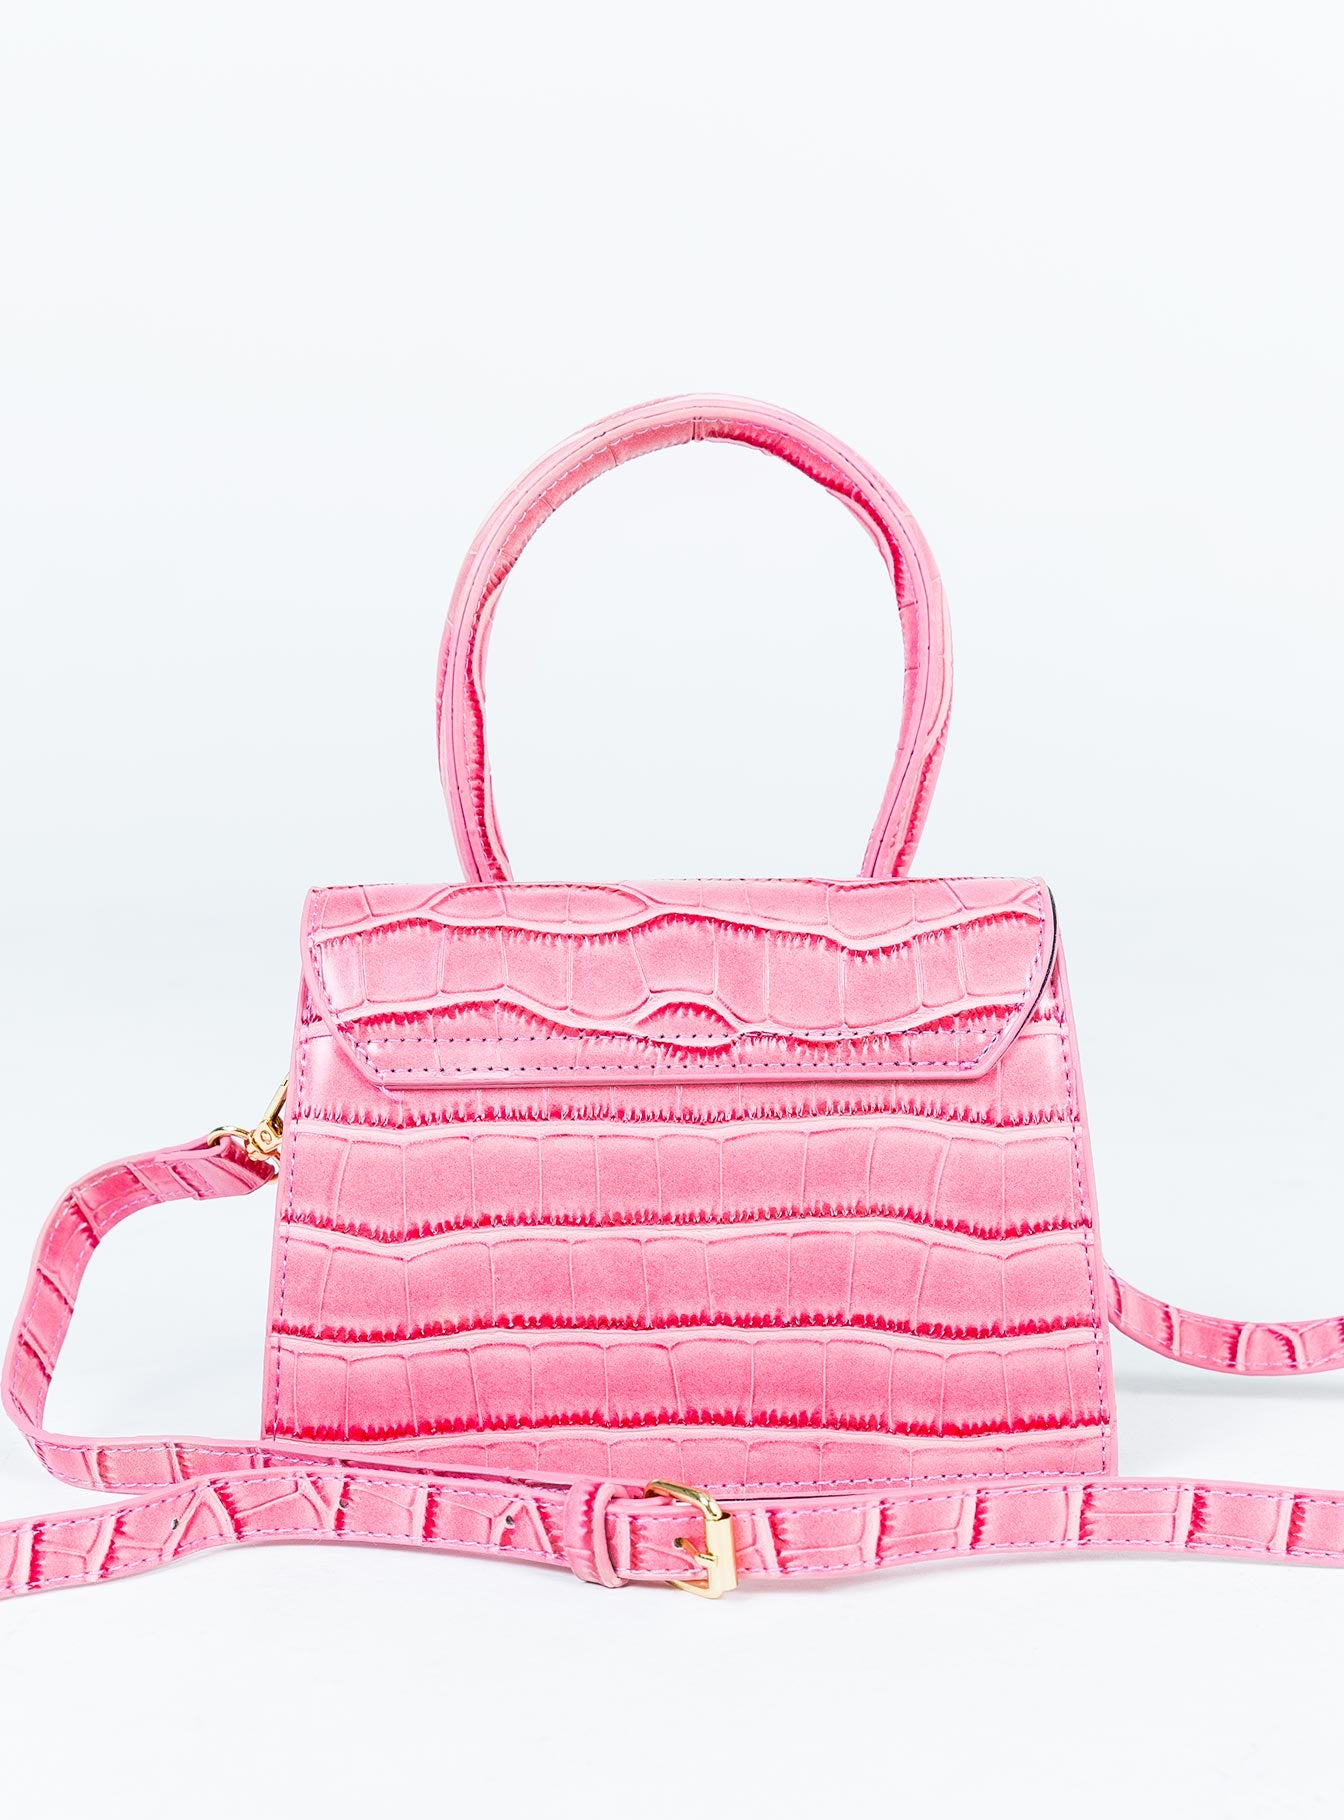 The George Bag Pink